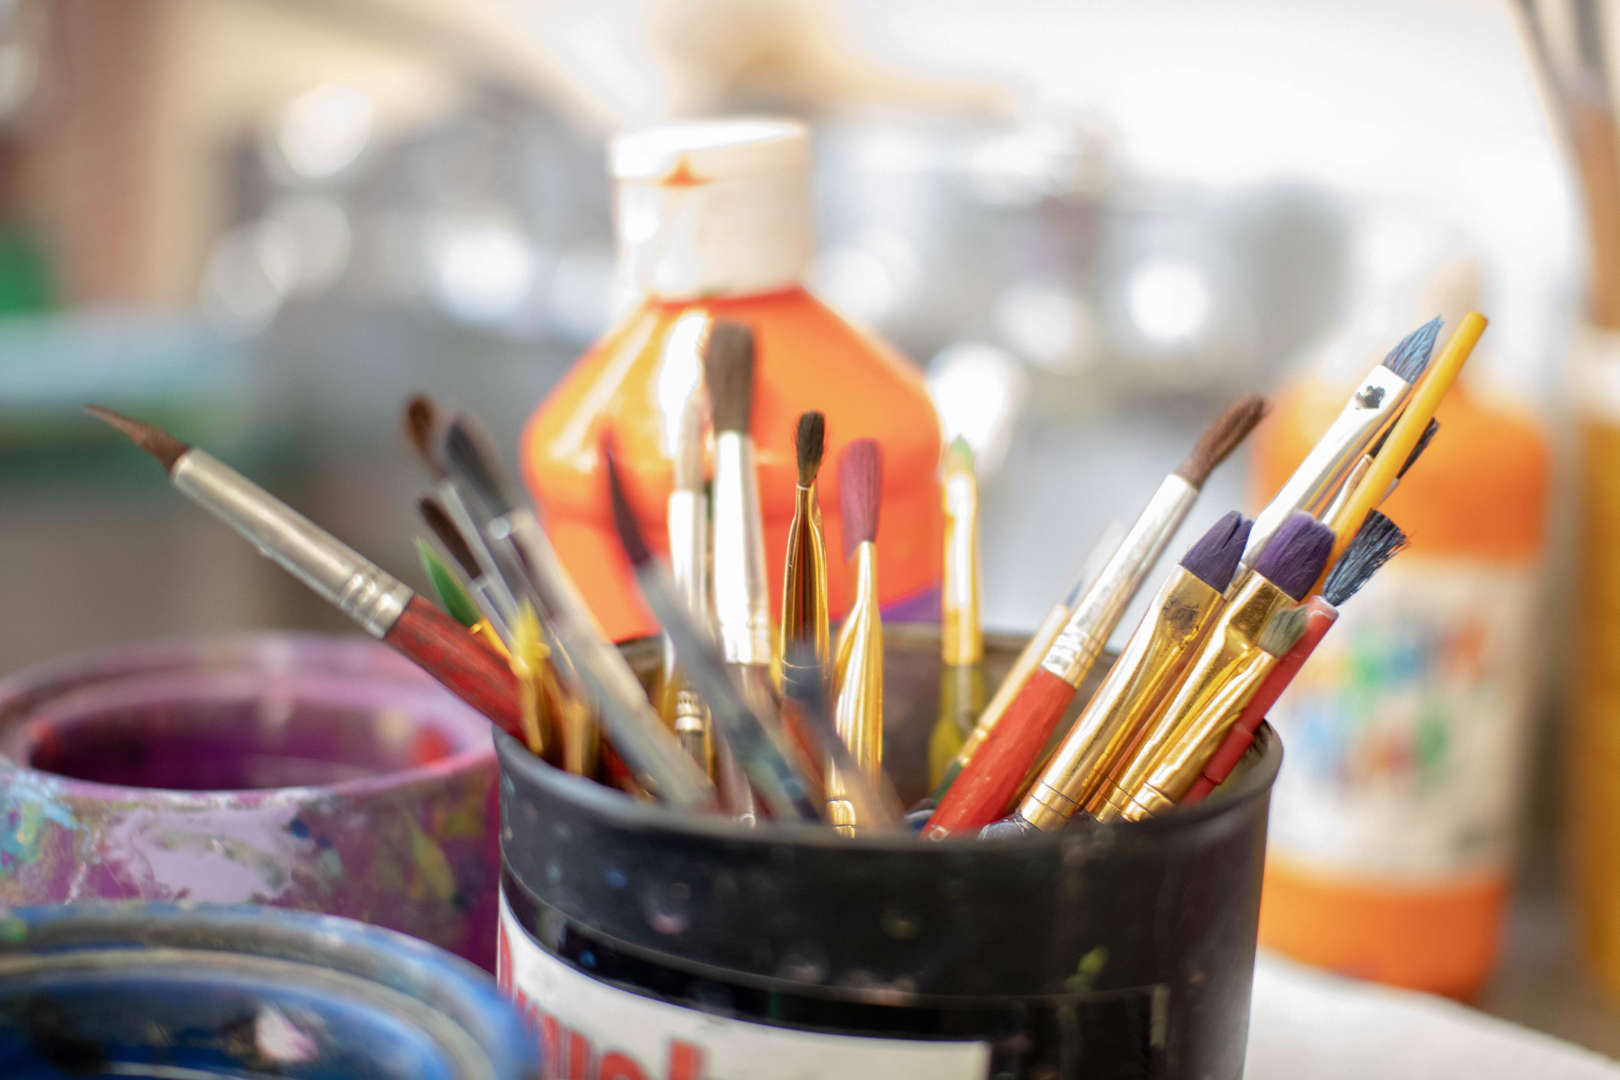 Art Supplies - Paintbrushes